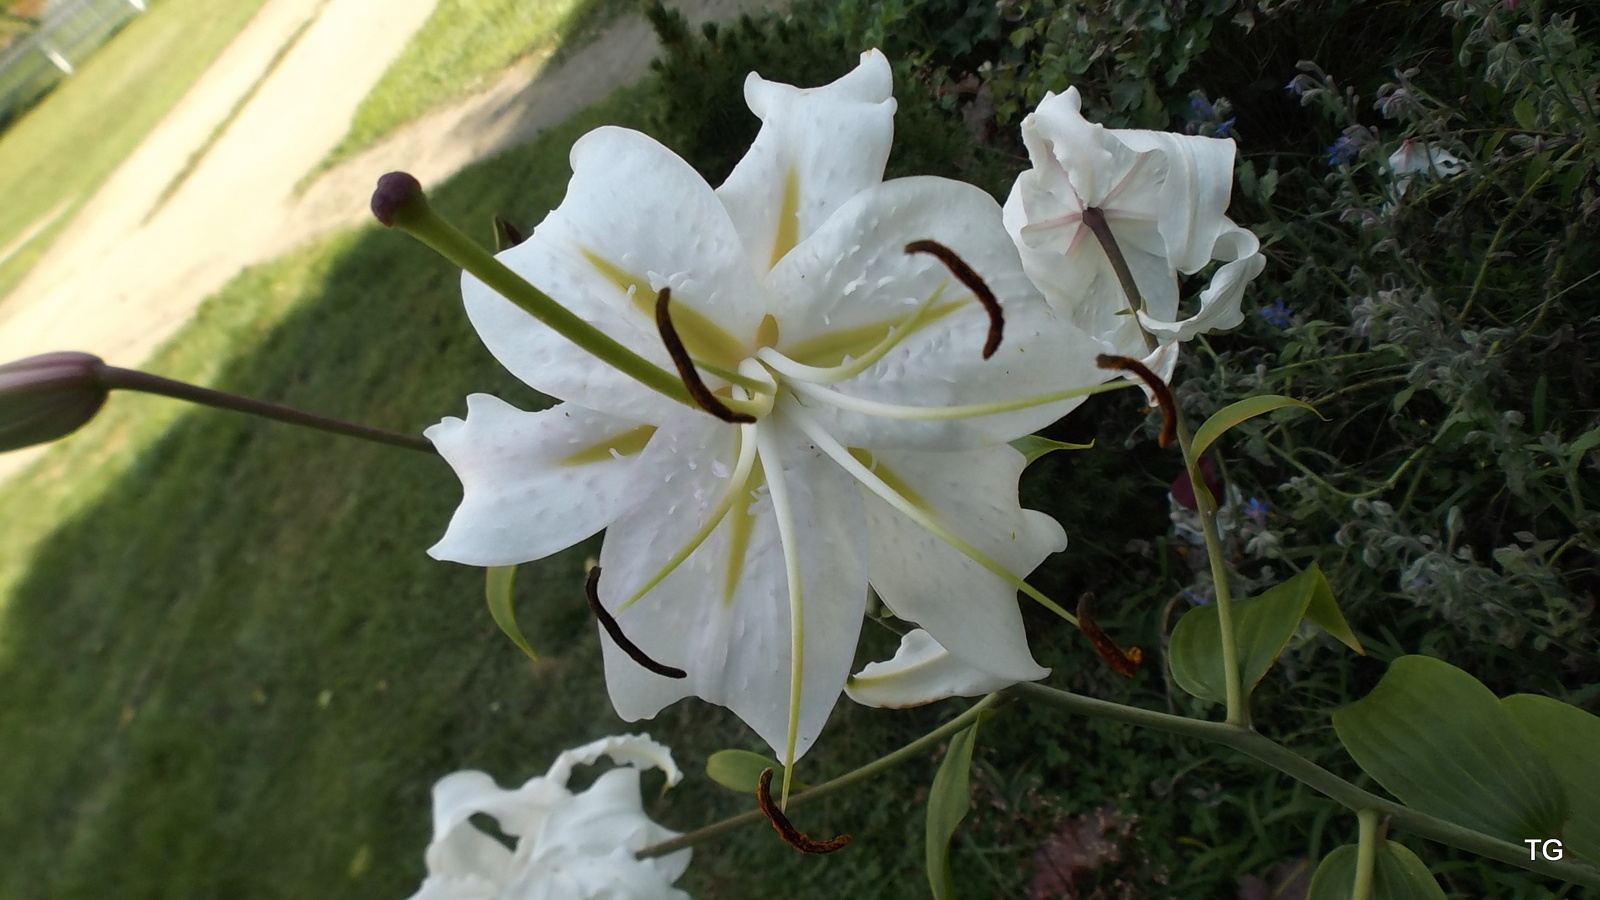 An utterly gorgeous lily, from Jerie's side door garden.